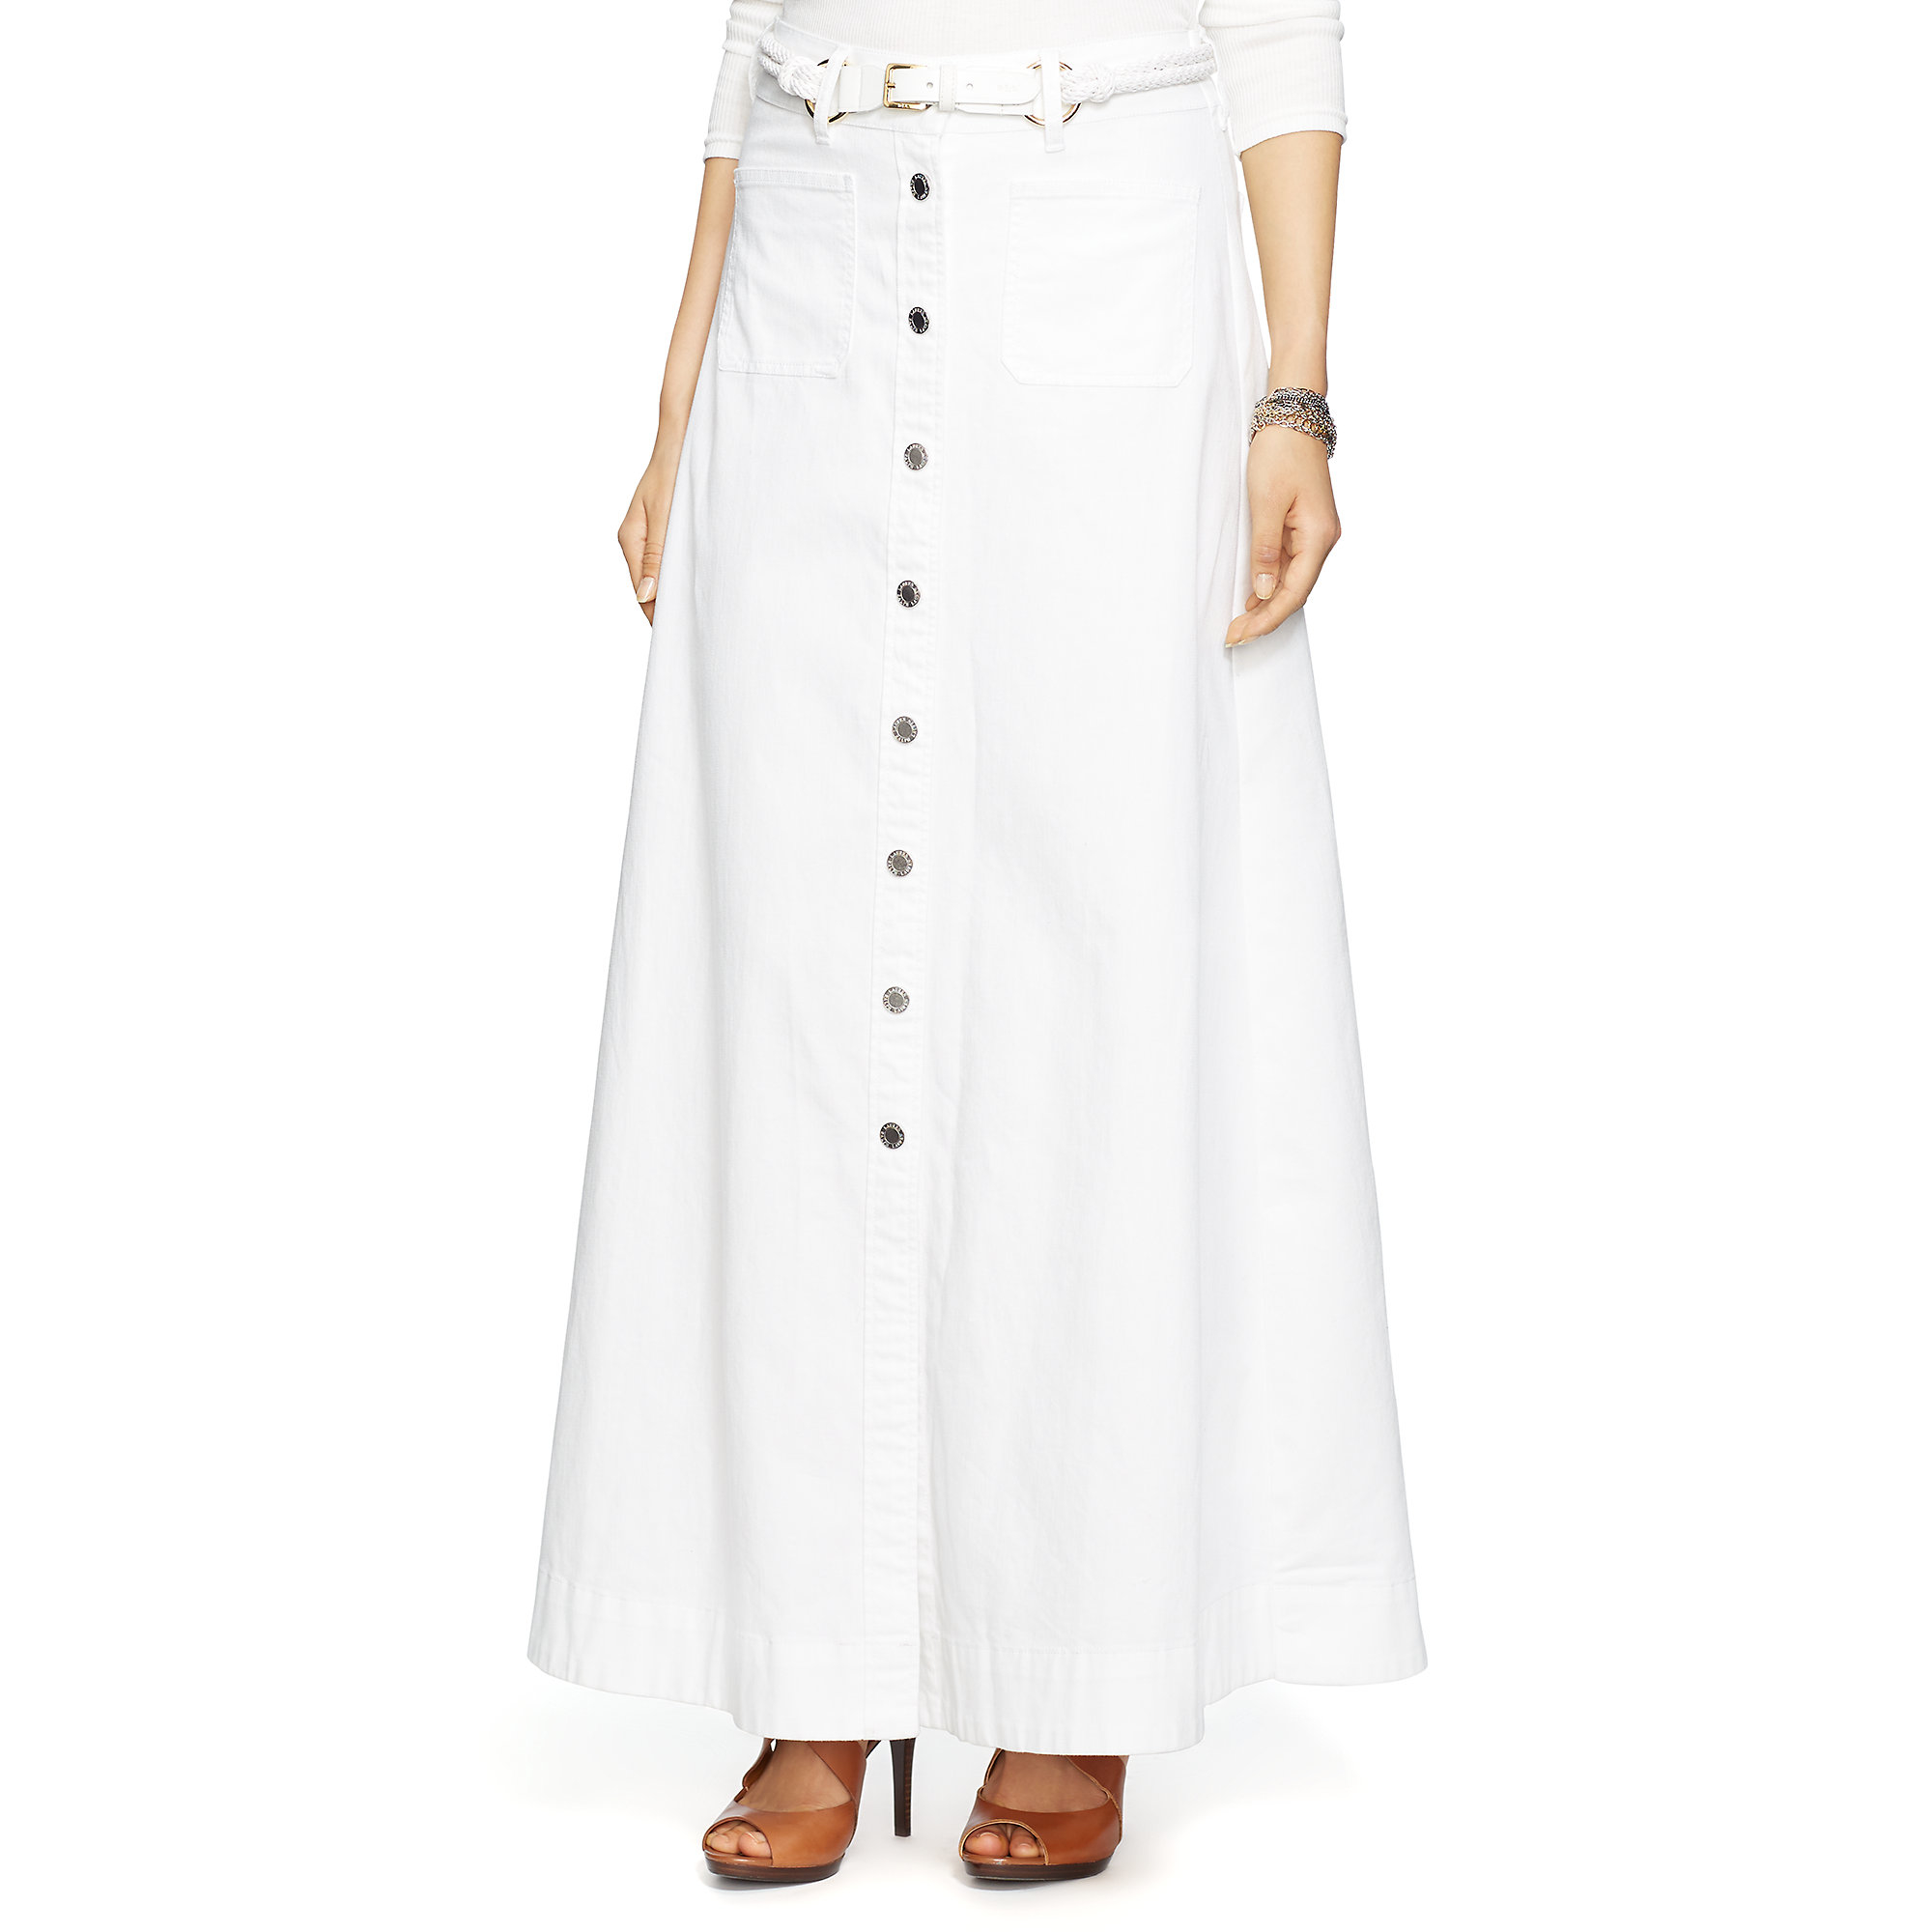 Pink pony Buttoned Denim A-line Skirt in White   Lyst